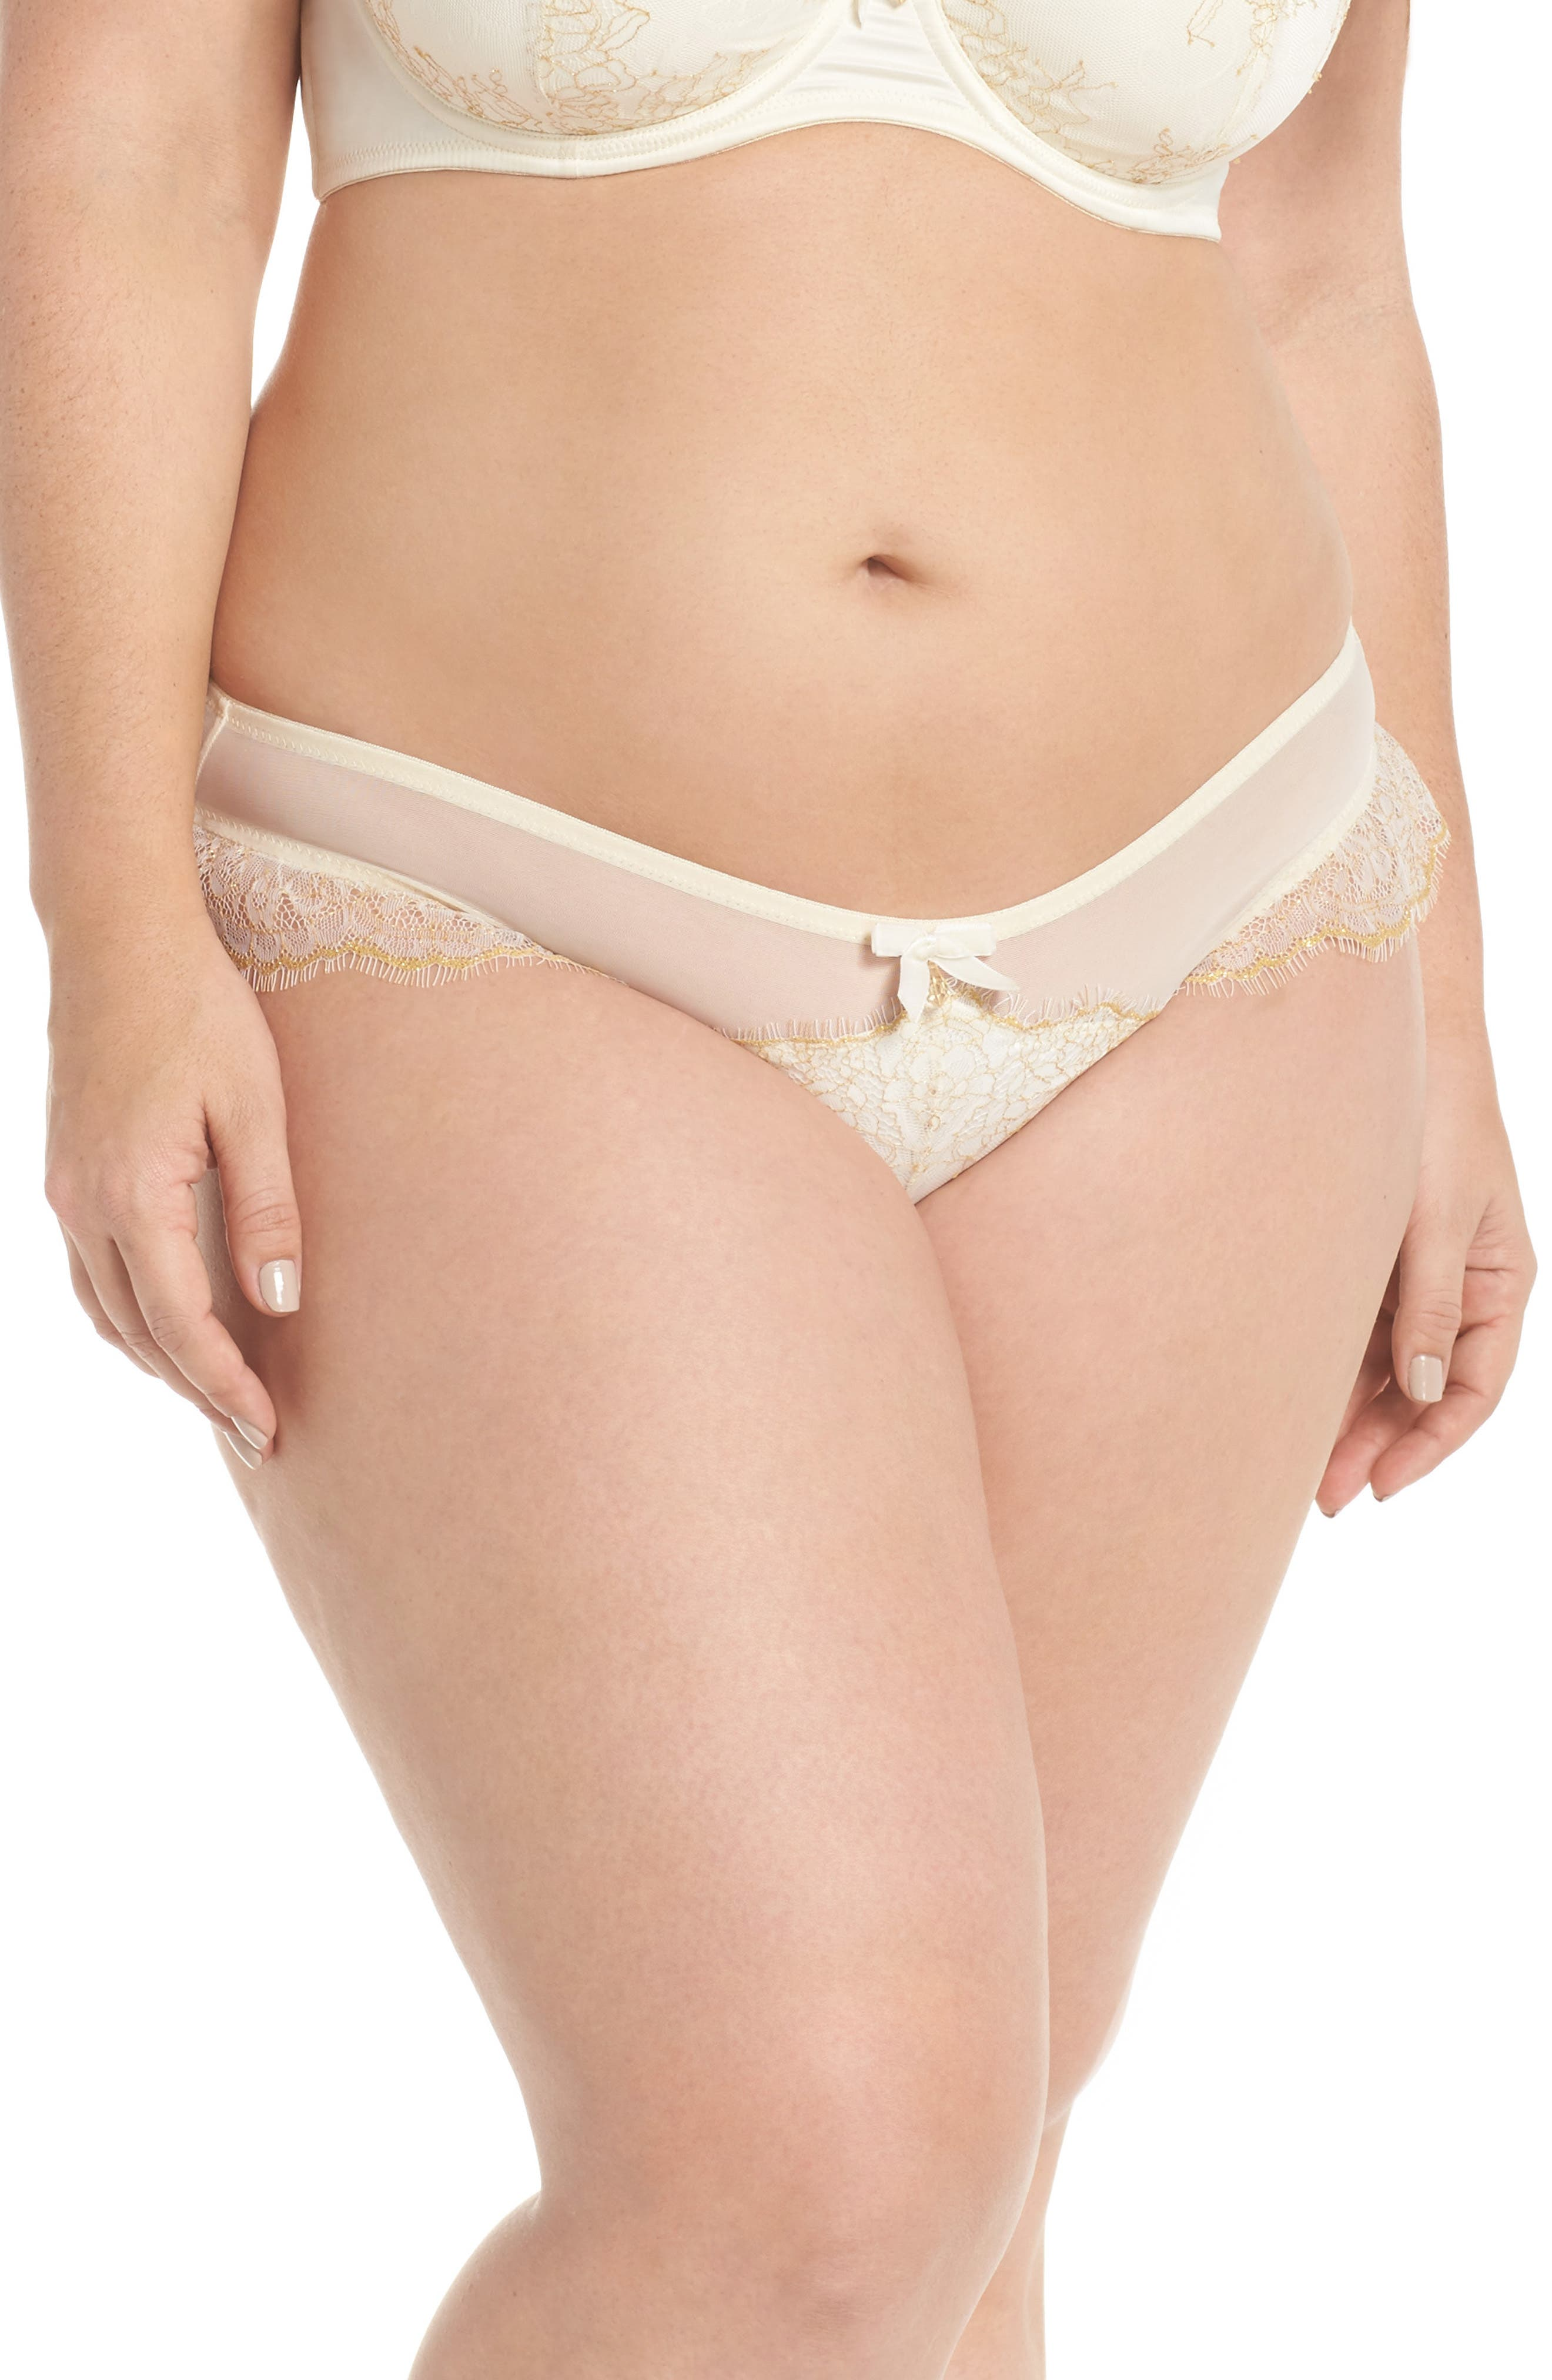 Karine Lace Panties,                             Main thumbnail 1, color,                             900